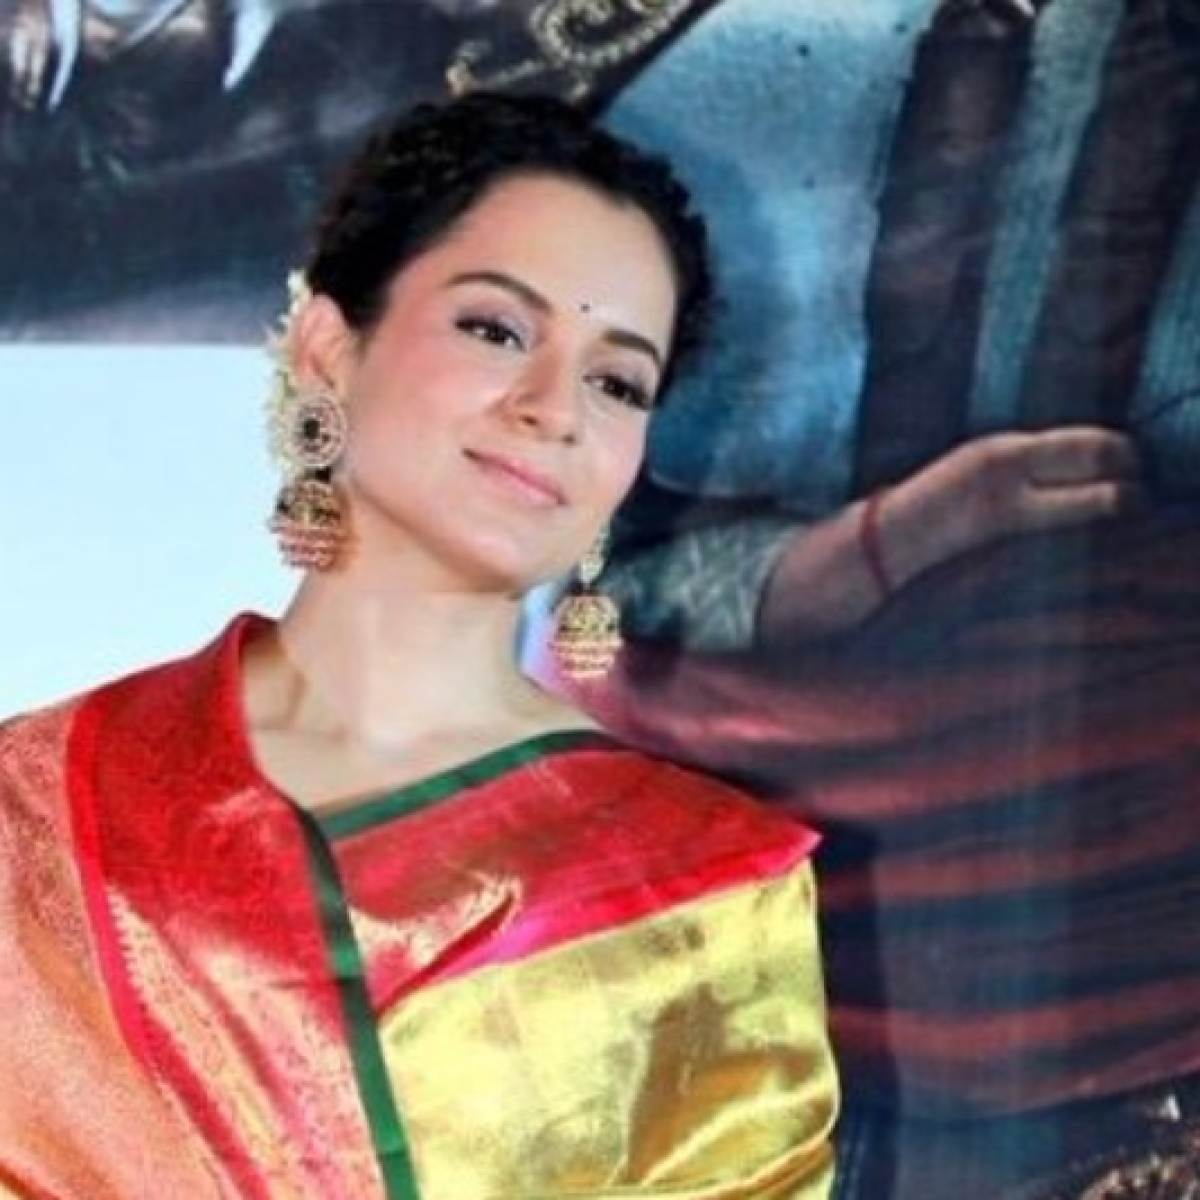 George Floyd protests: Kangana Ranaut slams Bollywood celebs for not tweeting about Palghar Sadhu lynching